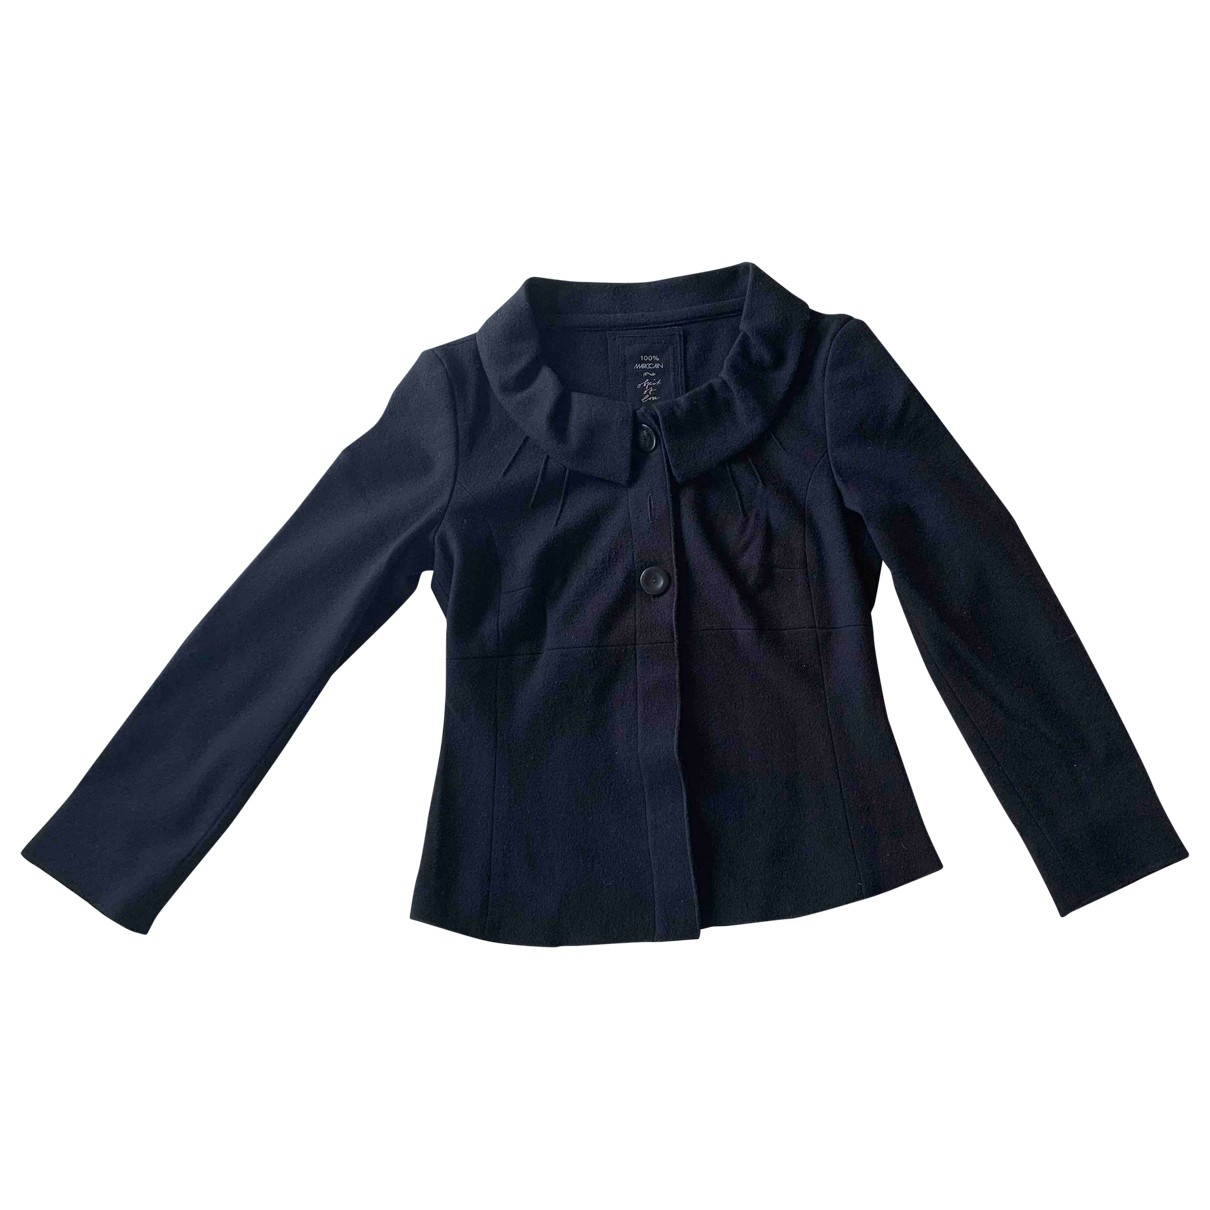 Marc Cain \N Black Wool jacket for Women 38 FR